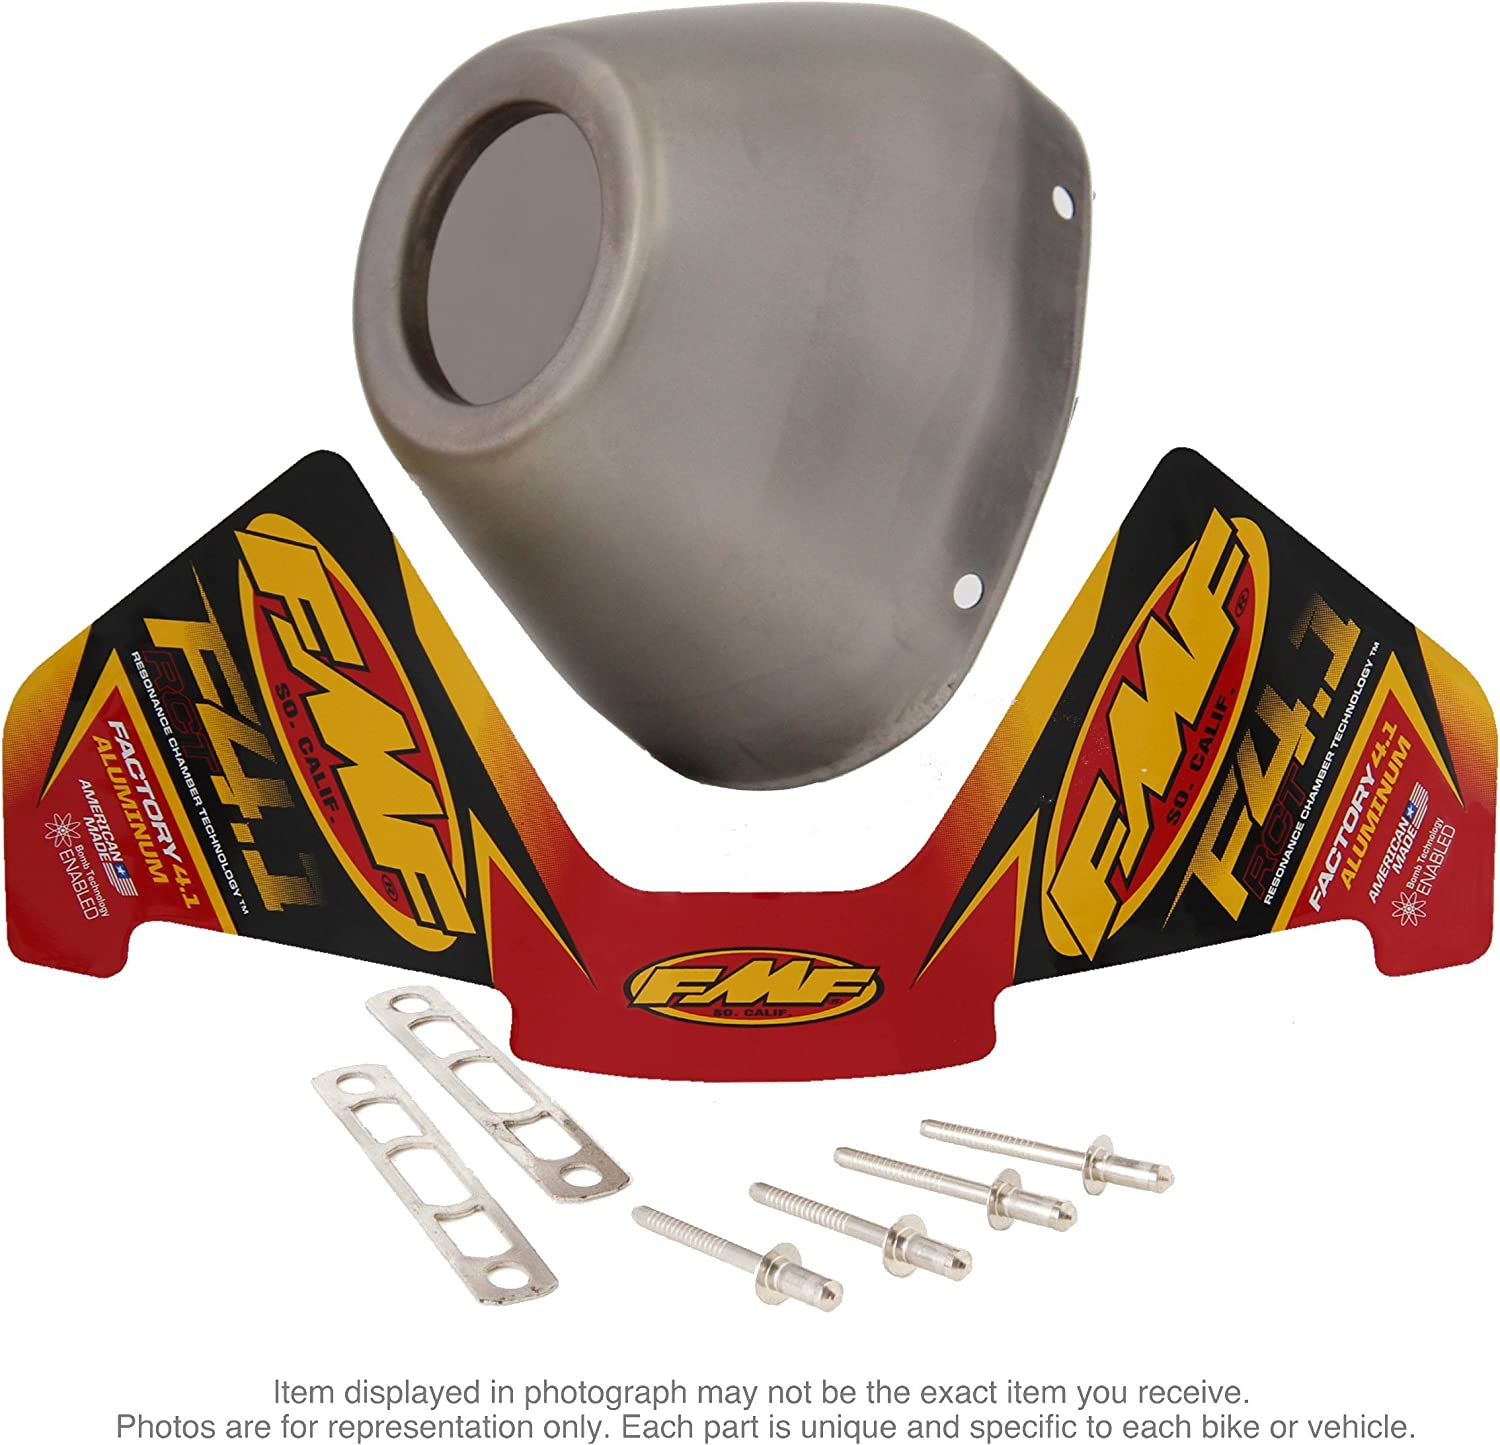 FMF Racing End Cap Kit for Factory 4.1RCT Stainless Steel 040641